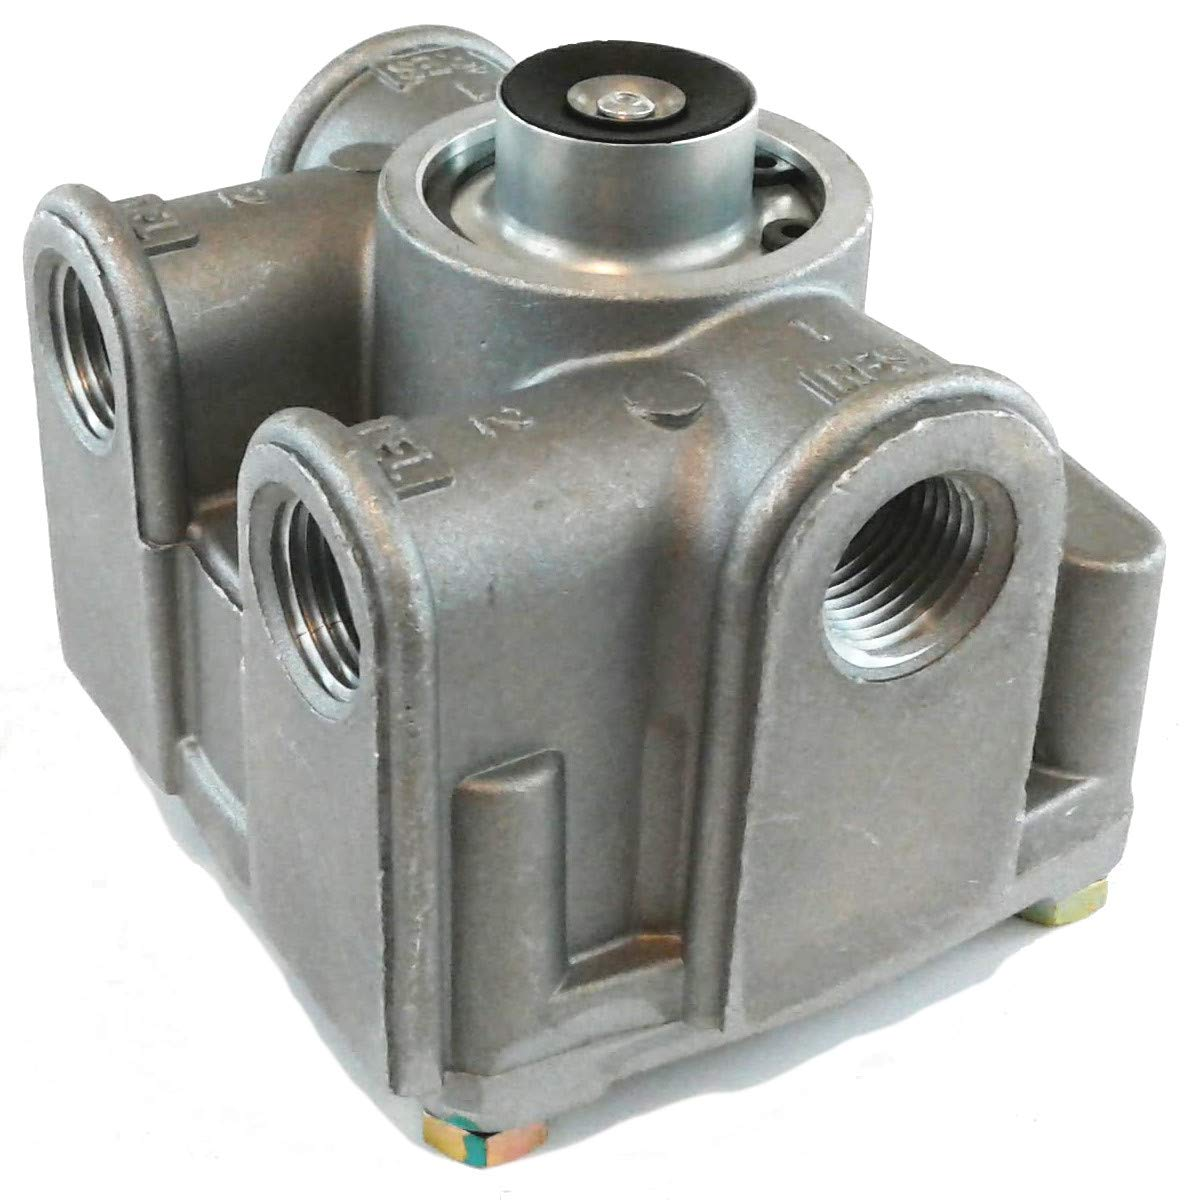 R-12 Relay Brake Valve - 1/2'' Delivery for Heavy Duty Big Rigs